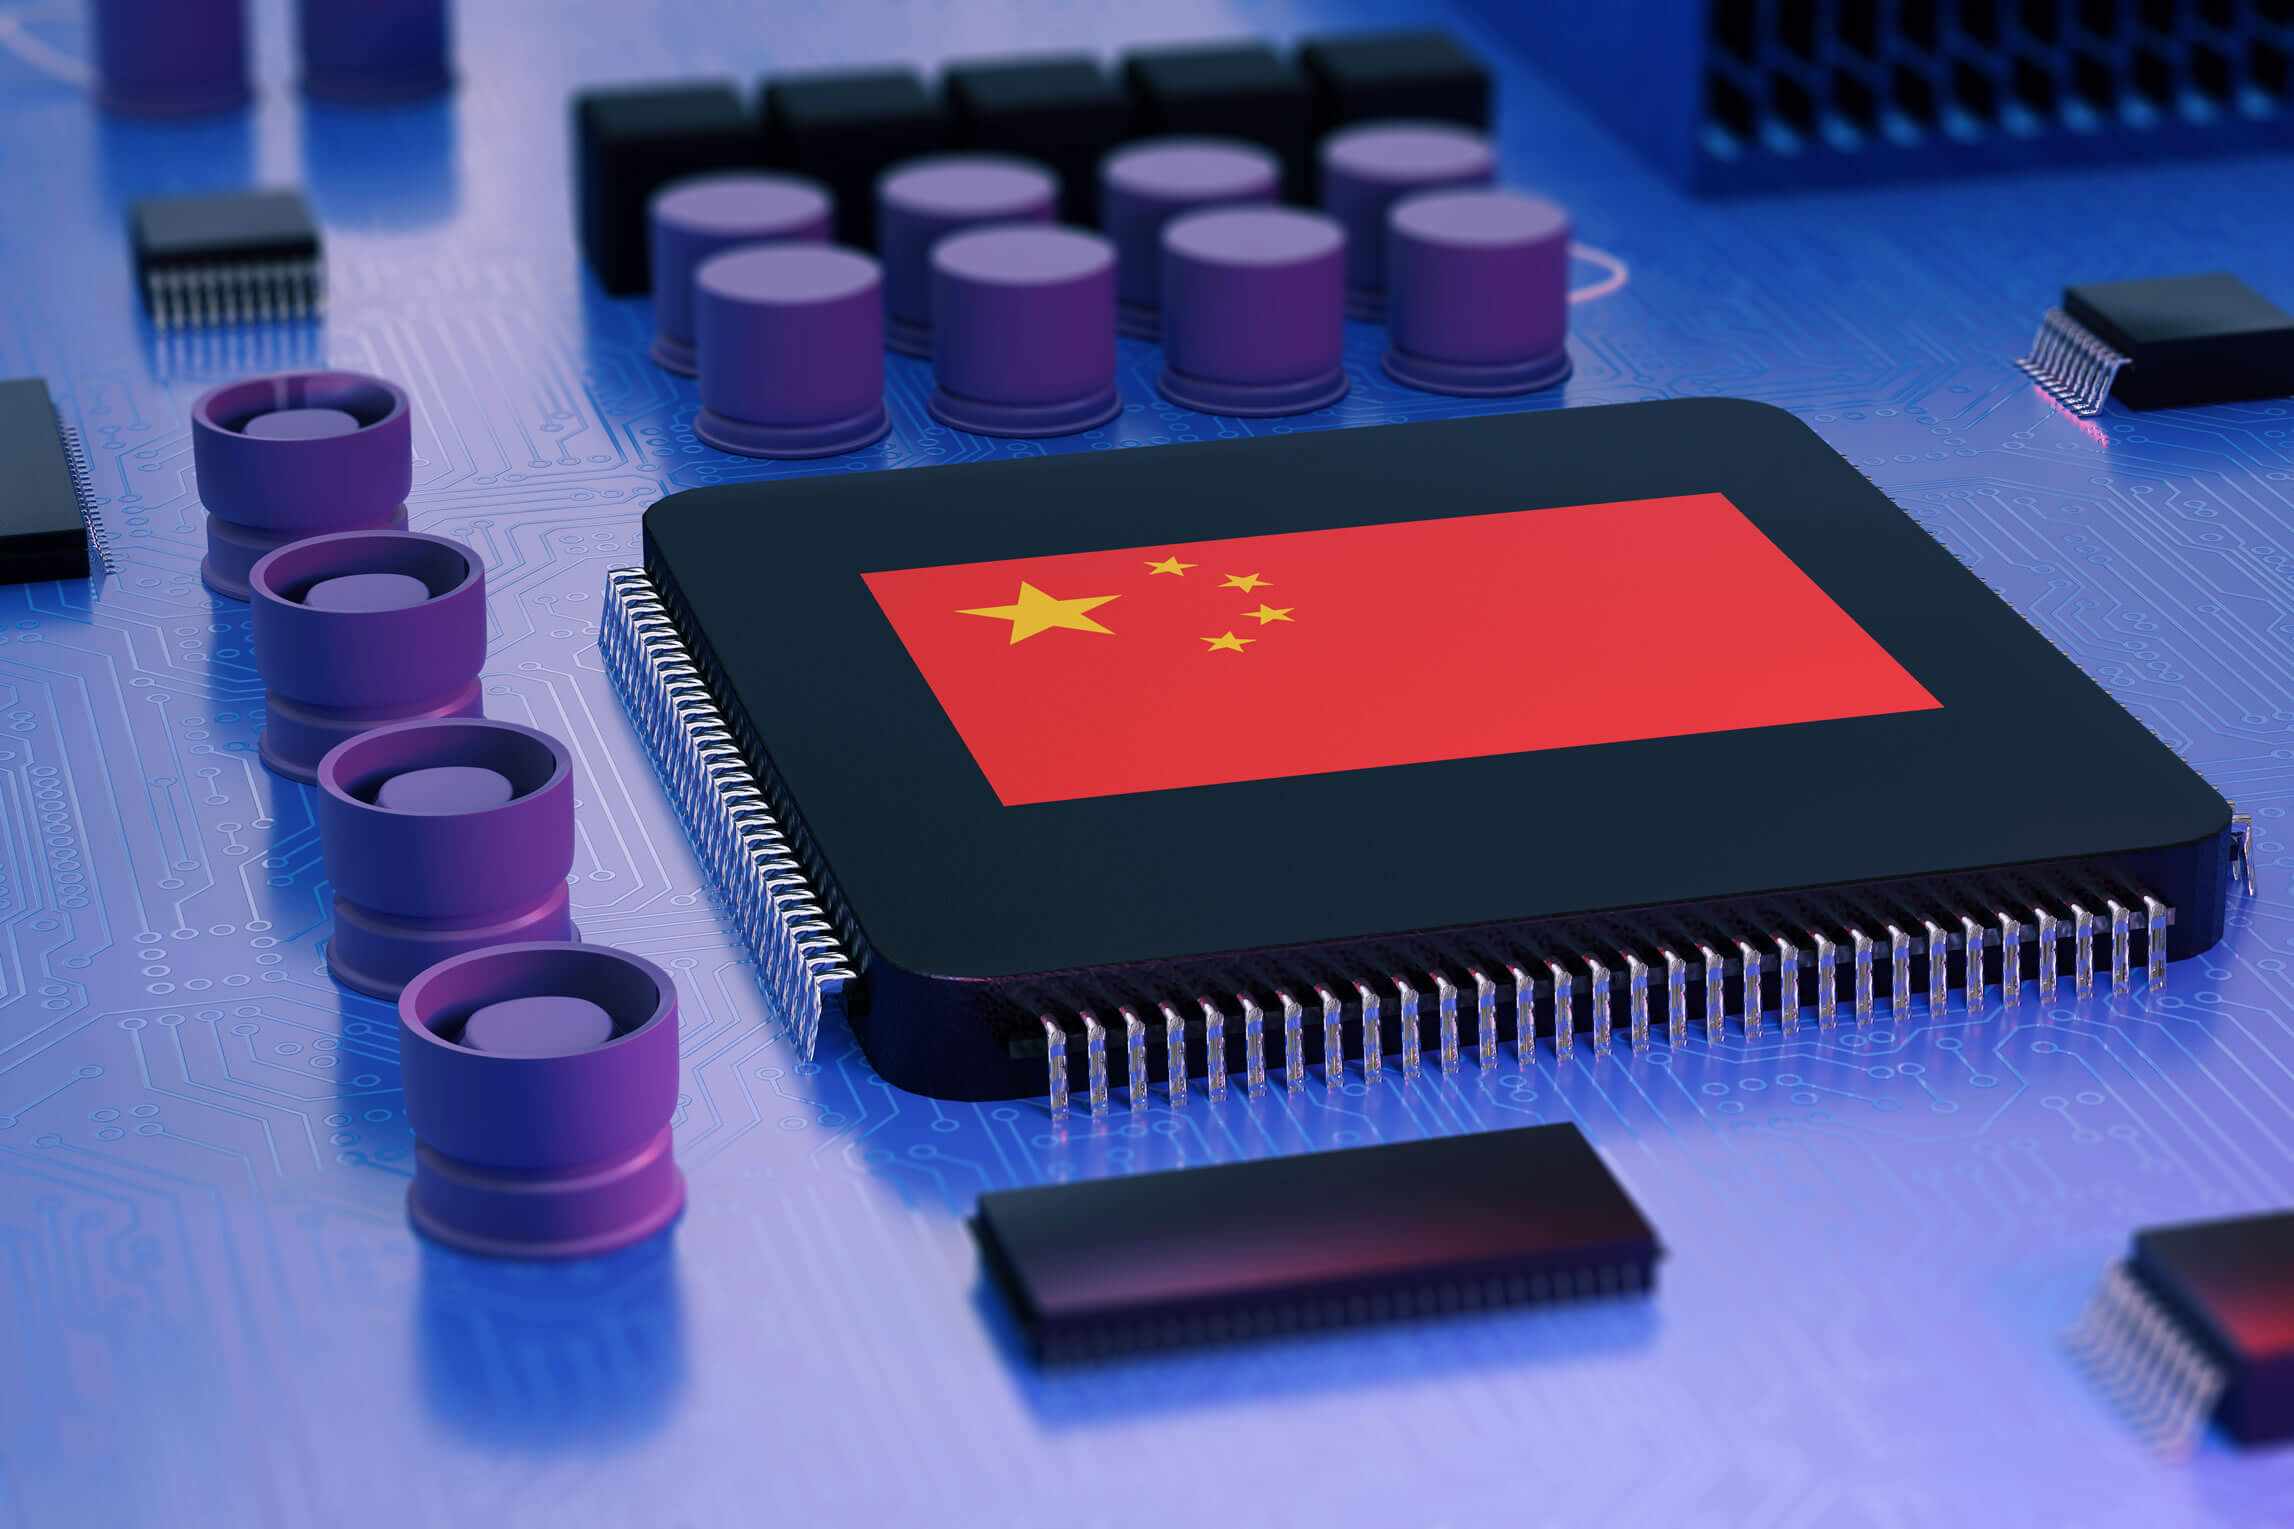 Latest Zhaoxin x86 CPUs tested: This is what China closing the gap looks like